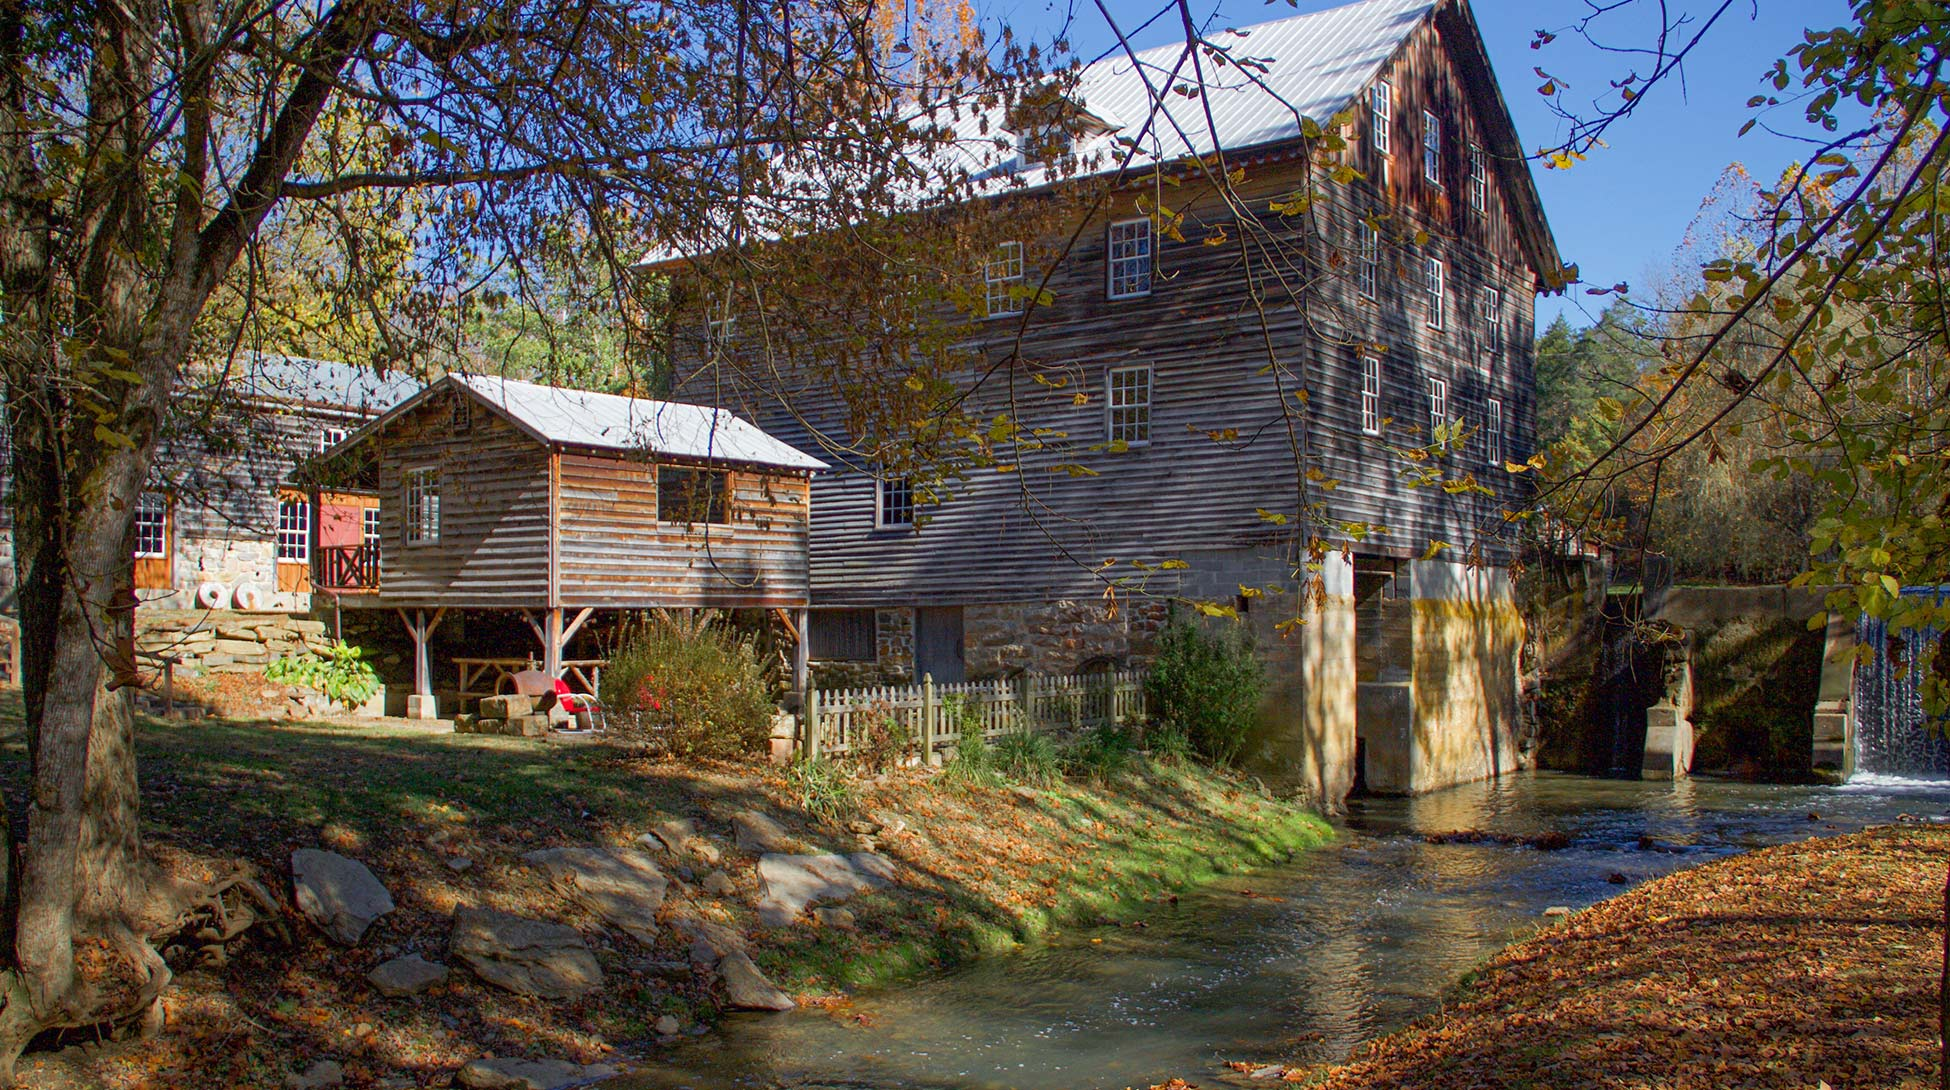 Cook's Old Mill